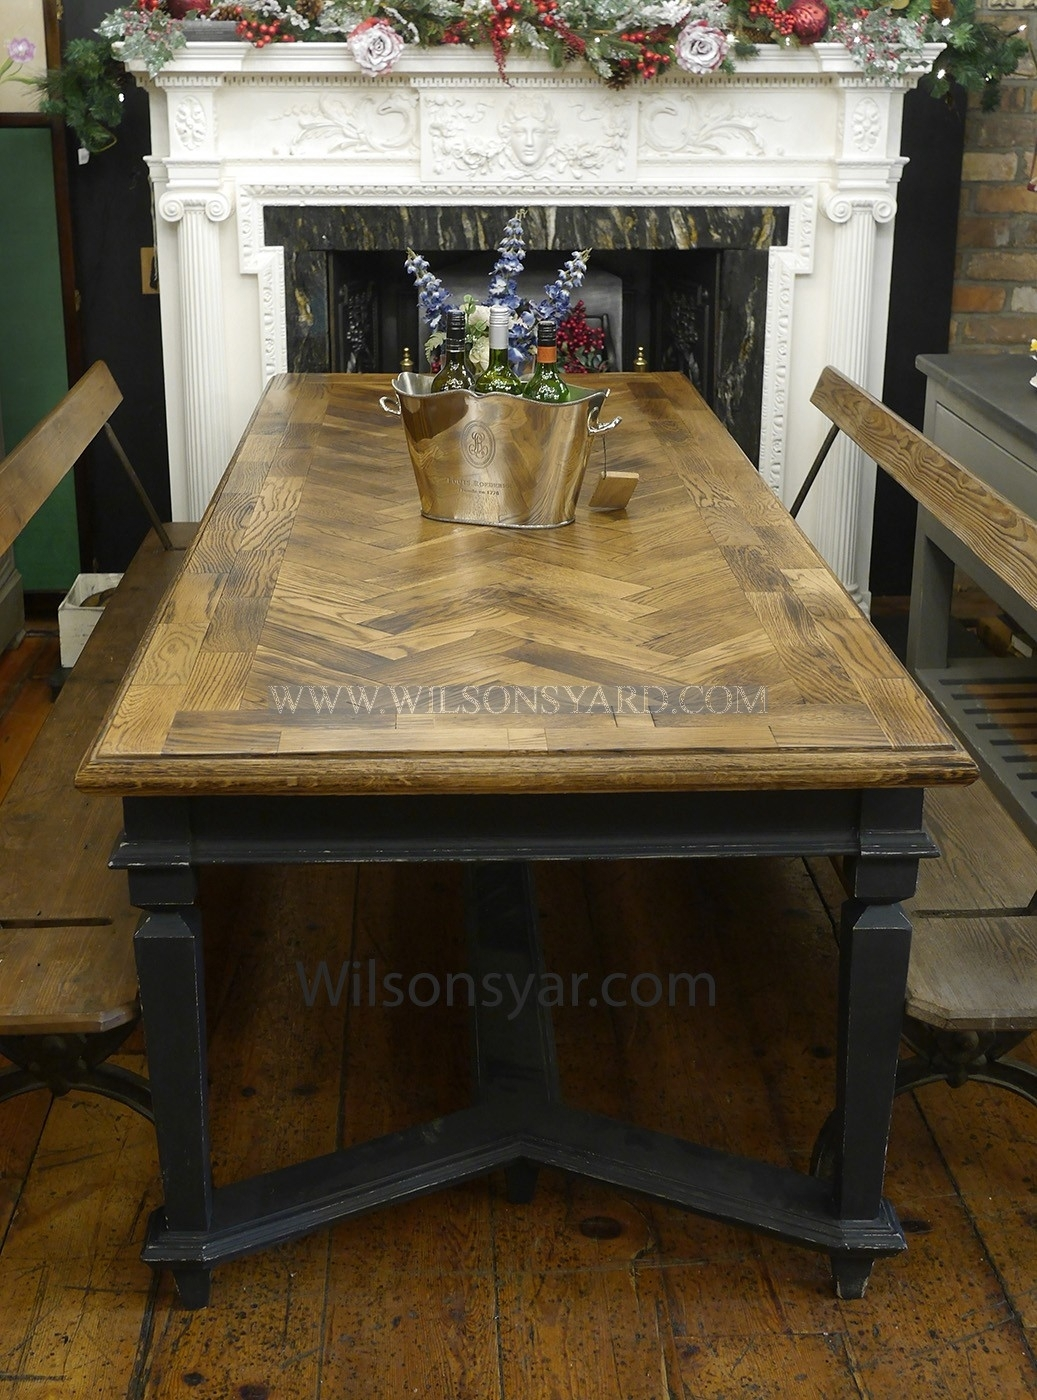 Reclaimed Oak Parquet Topped Bohemian Style Table | Wilsonsyard In Newest Parquet Dining Tables (Image 15 of 20)